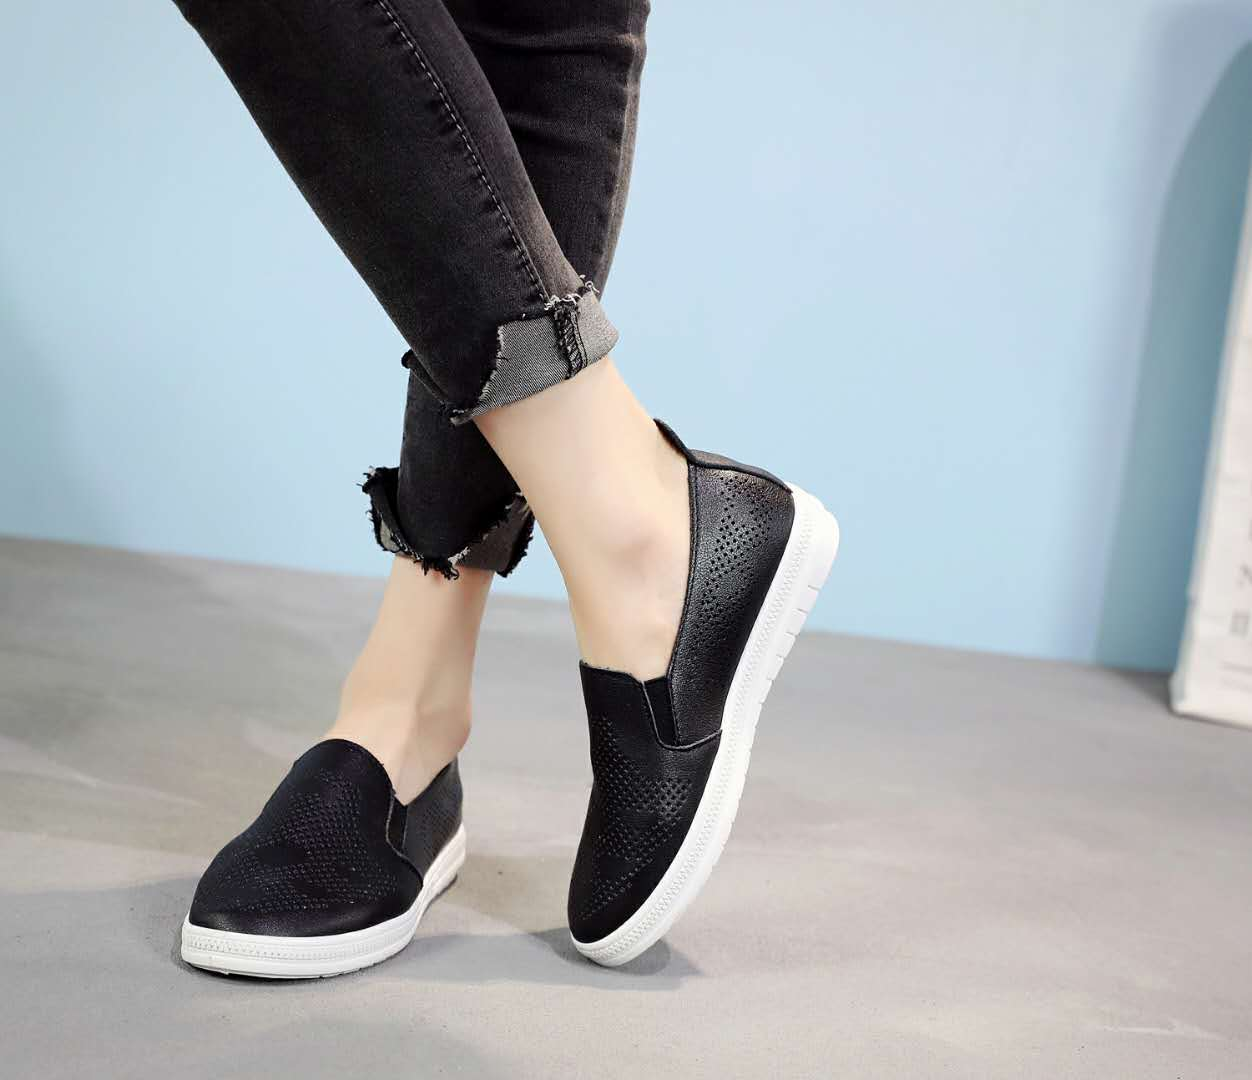 ladies shoes shoes women casual Summer Ow6zfqn